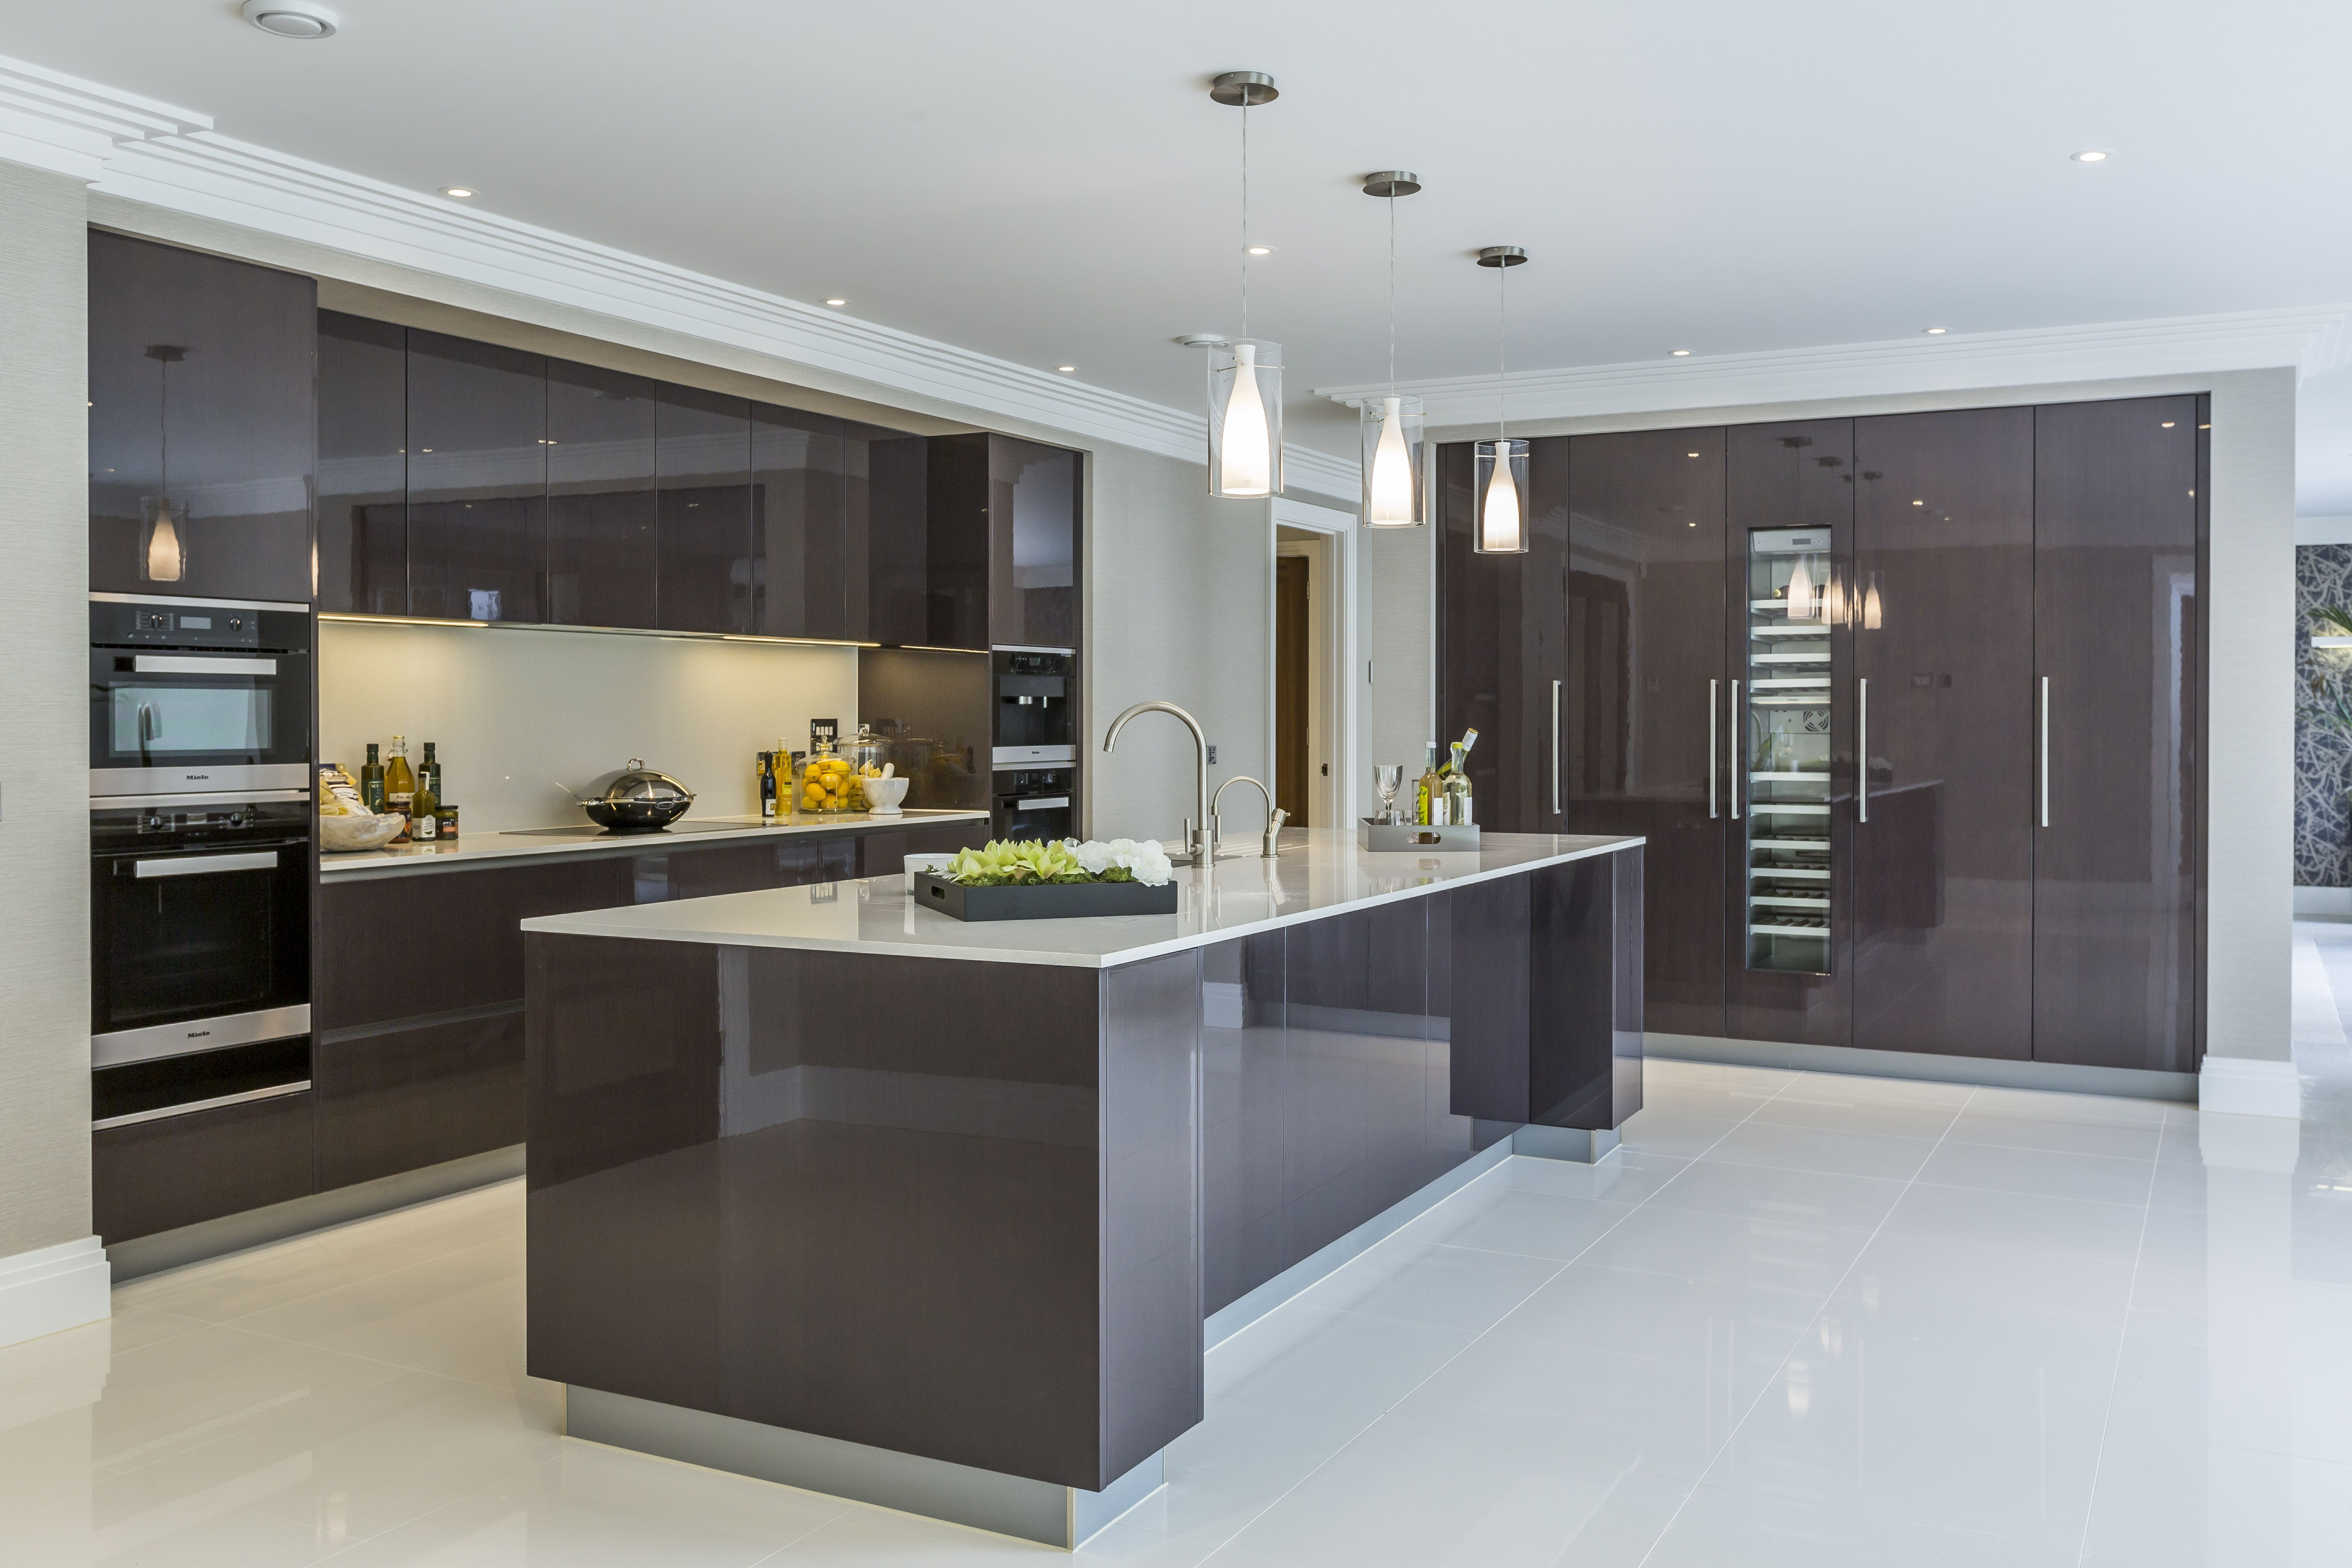 EXTREME Contemporary minimal high gloss kitchen design in